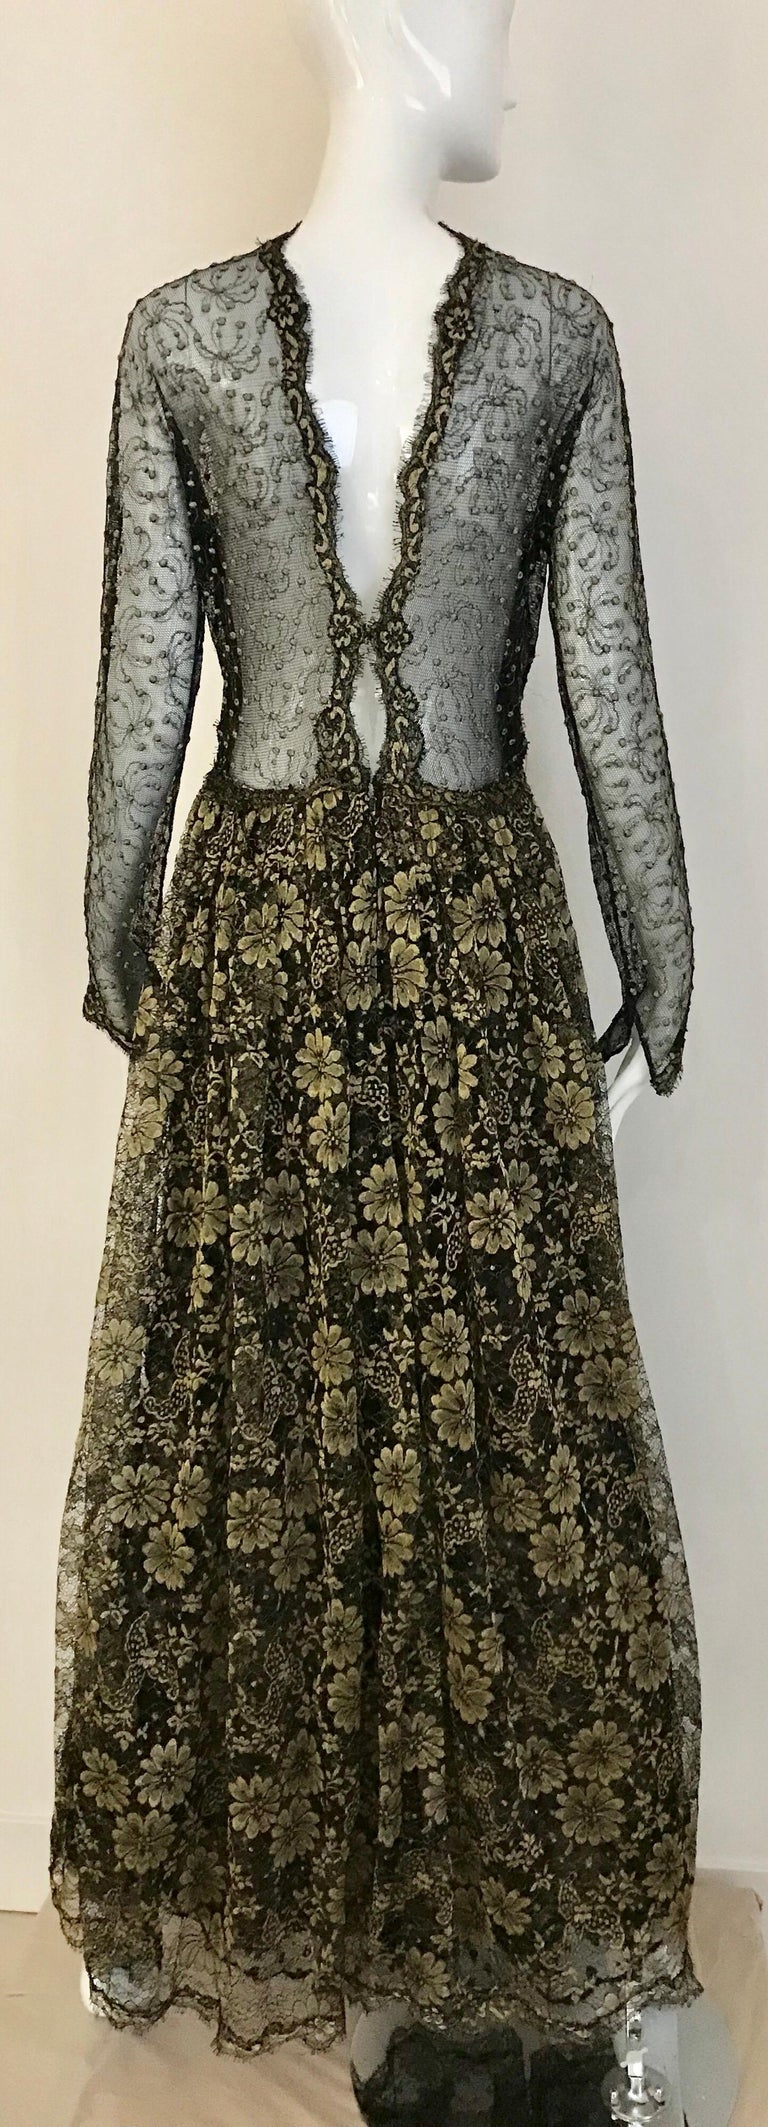 Geoffrey Beene Vintage Gold And Black Metallic Lace Dress  For Sale 8